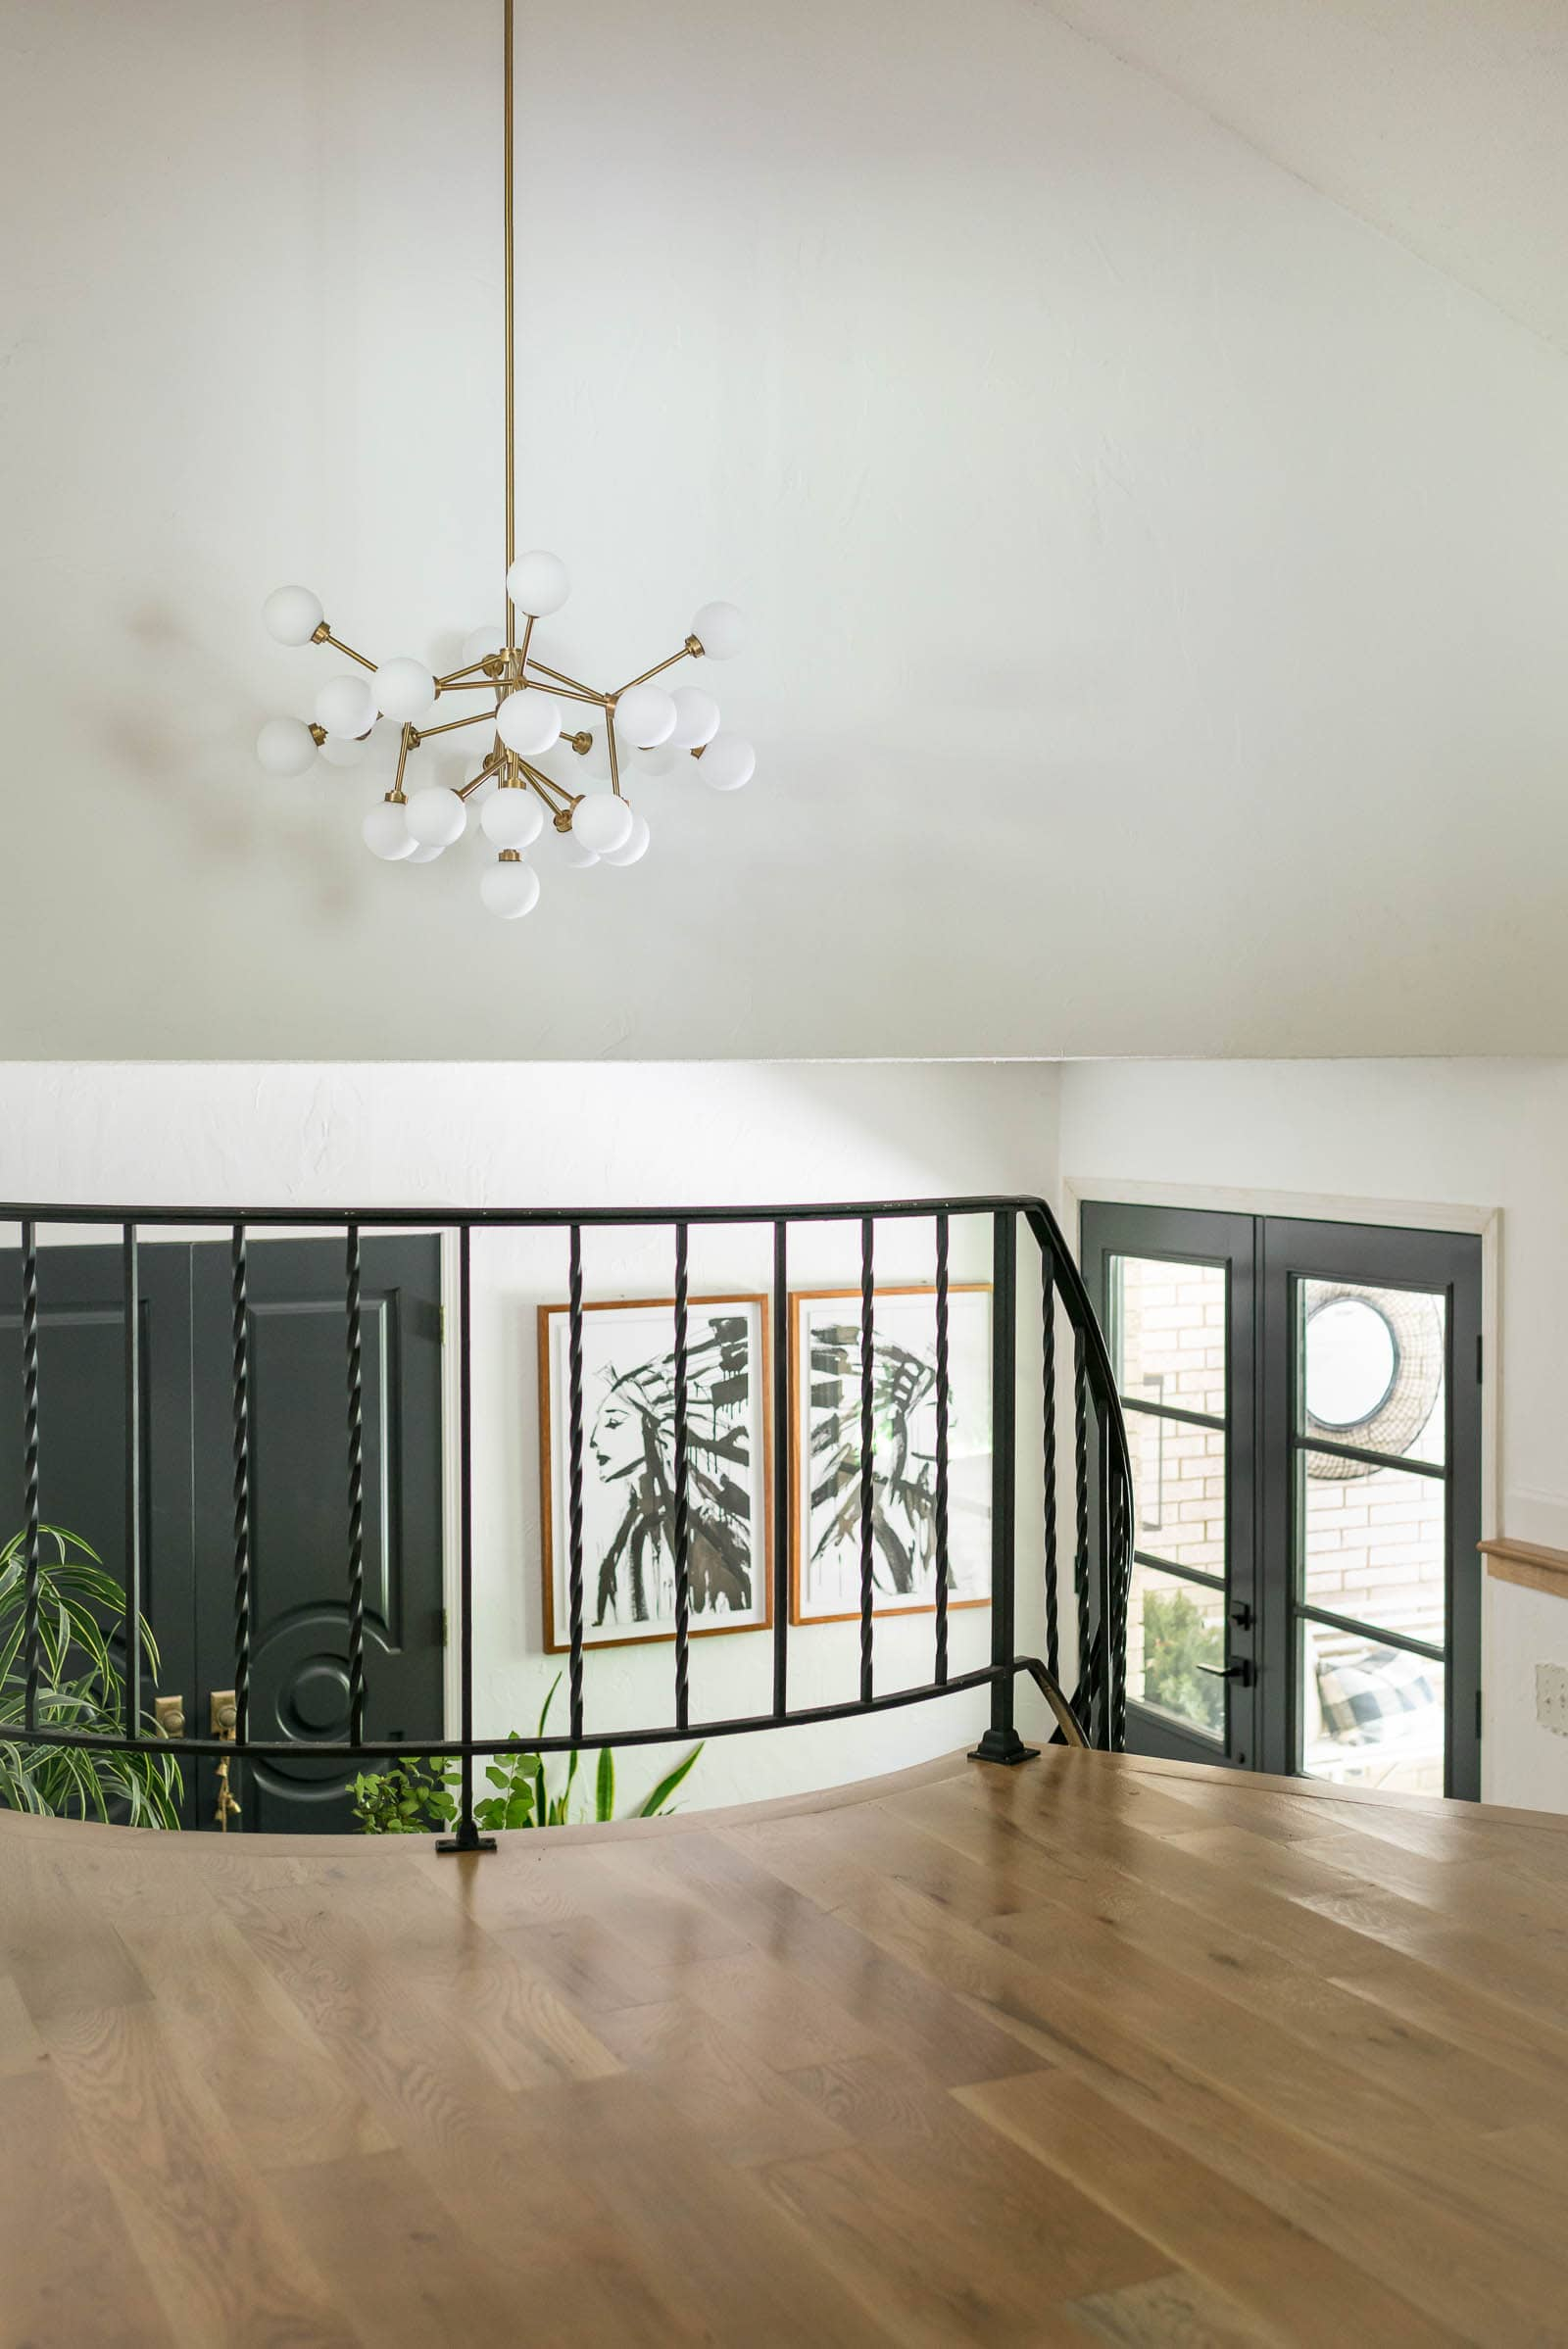 How do you paint wrought iron railings